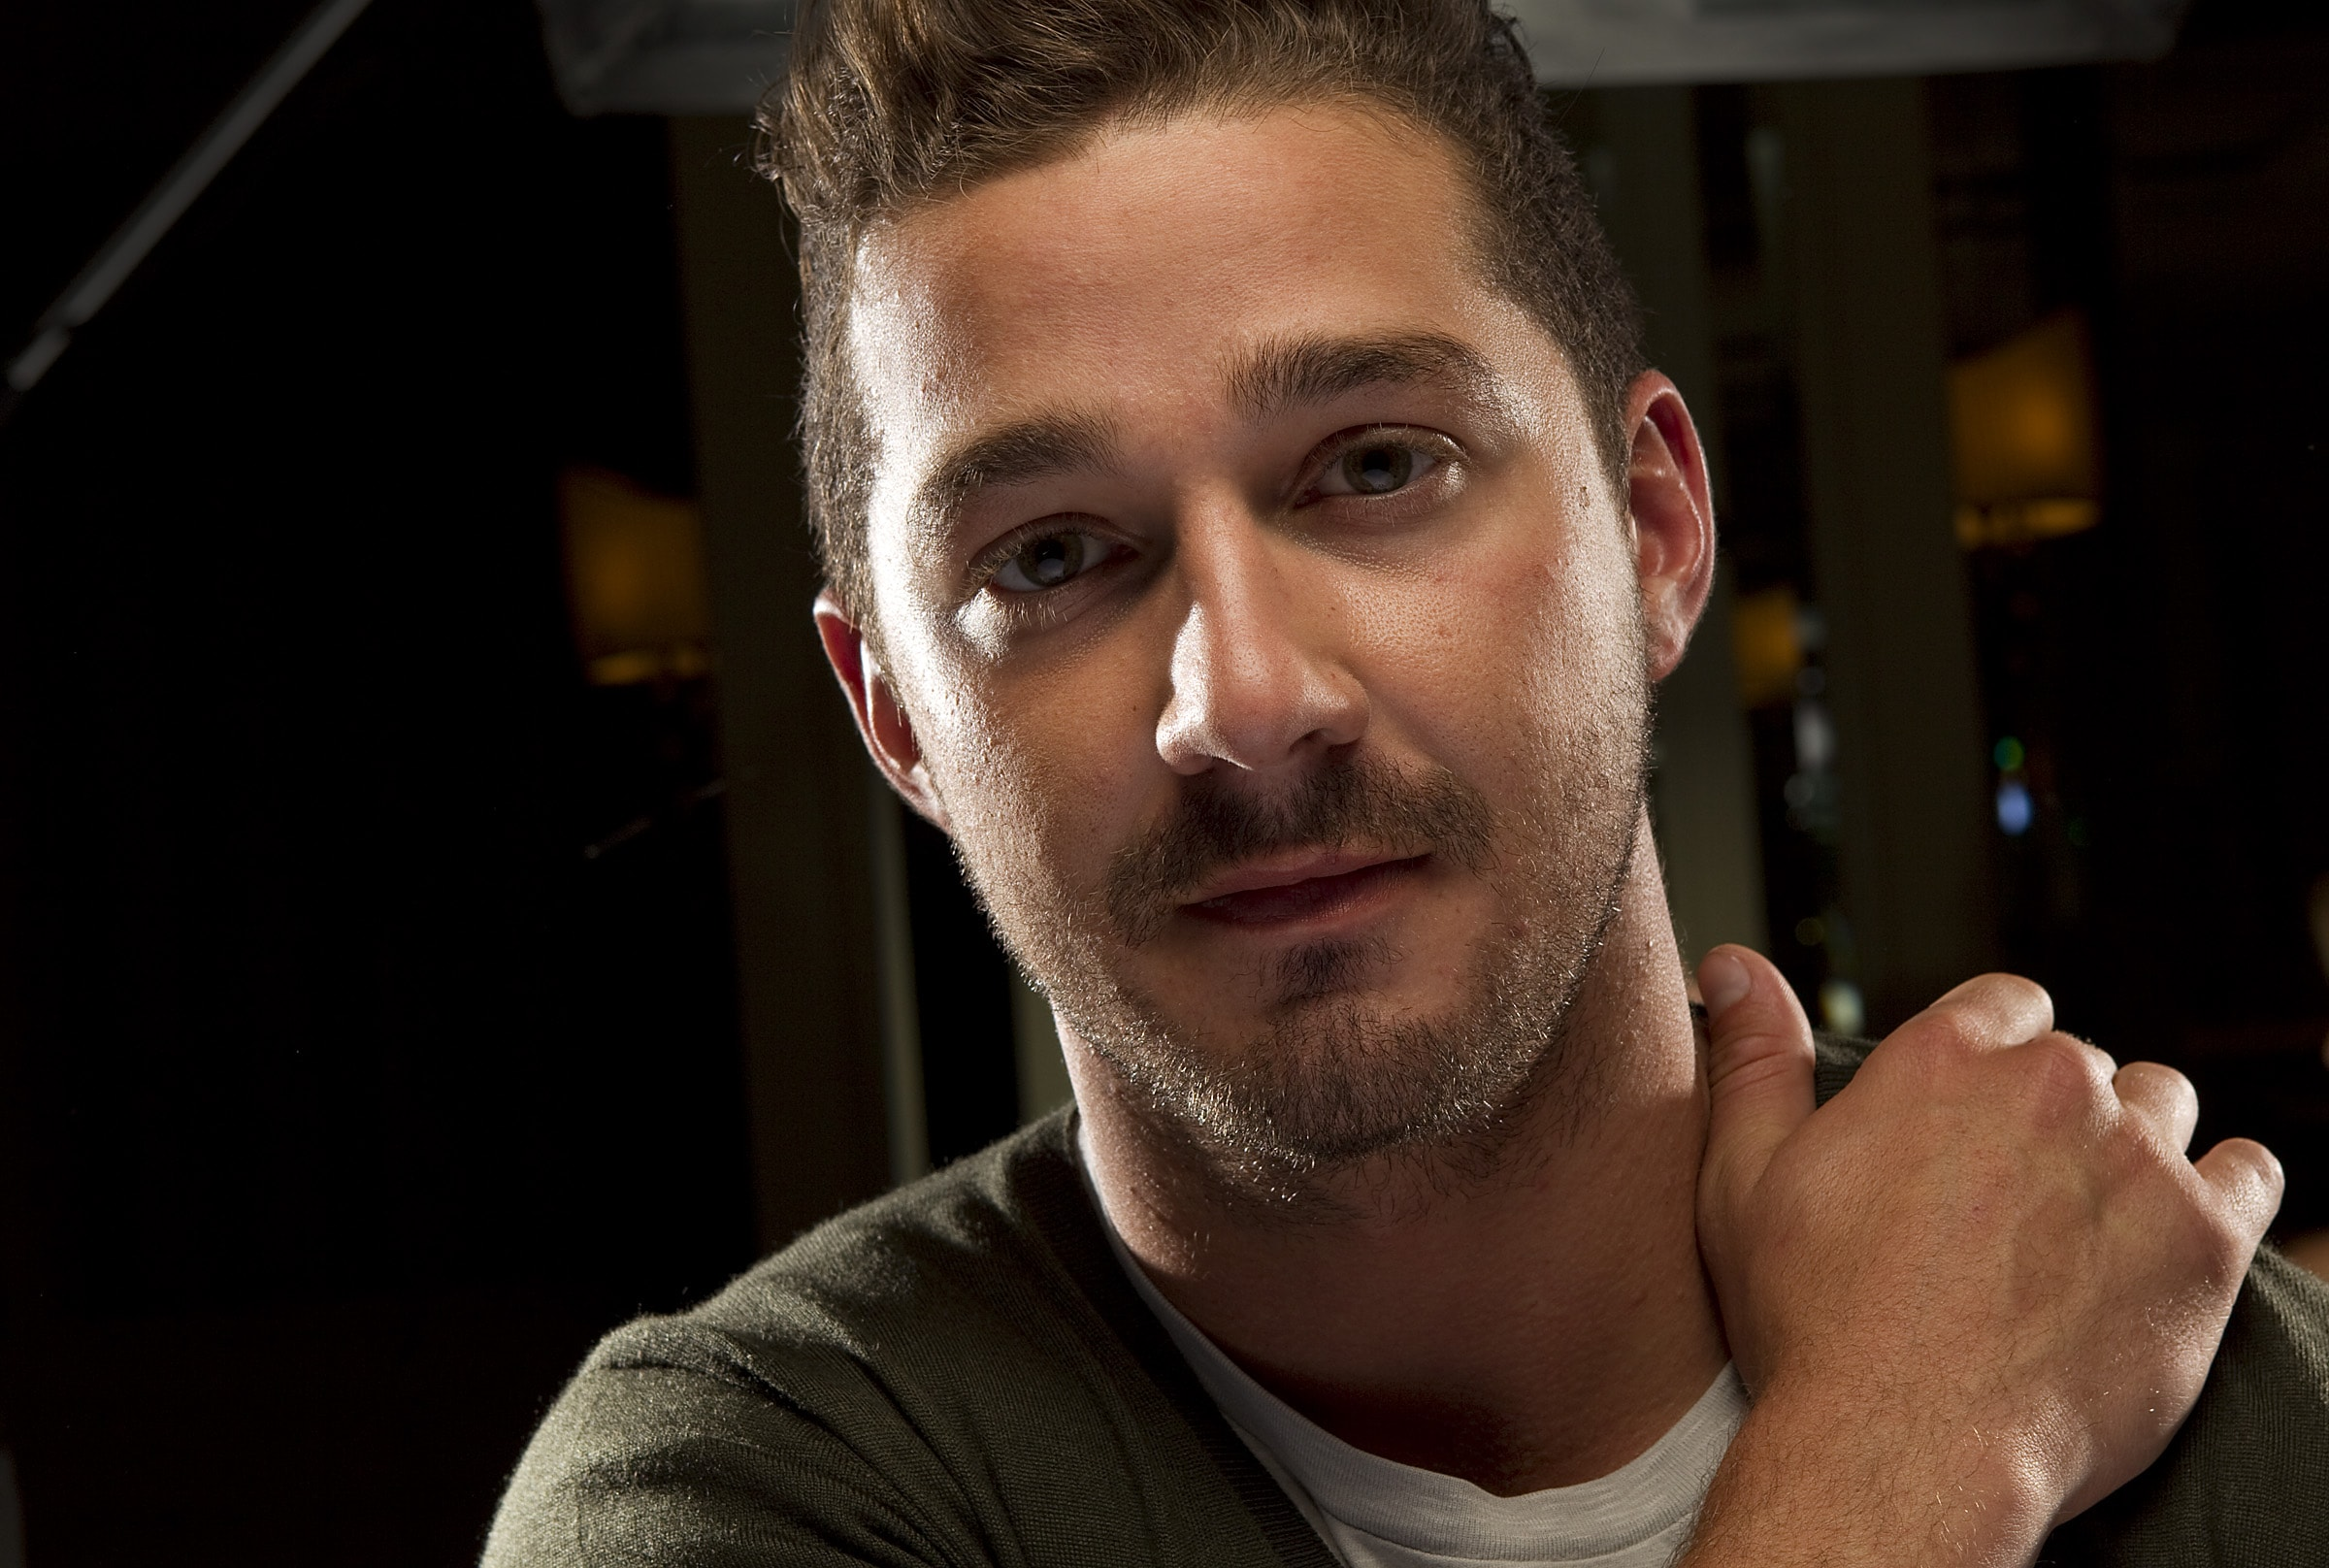 Shia Labeouf Widescreen for desktop